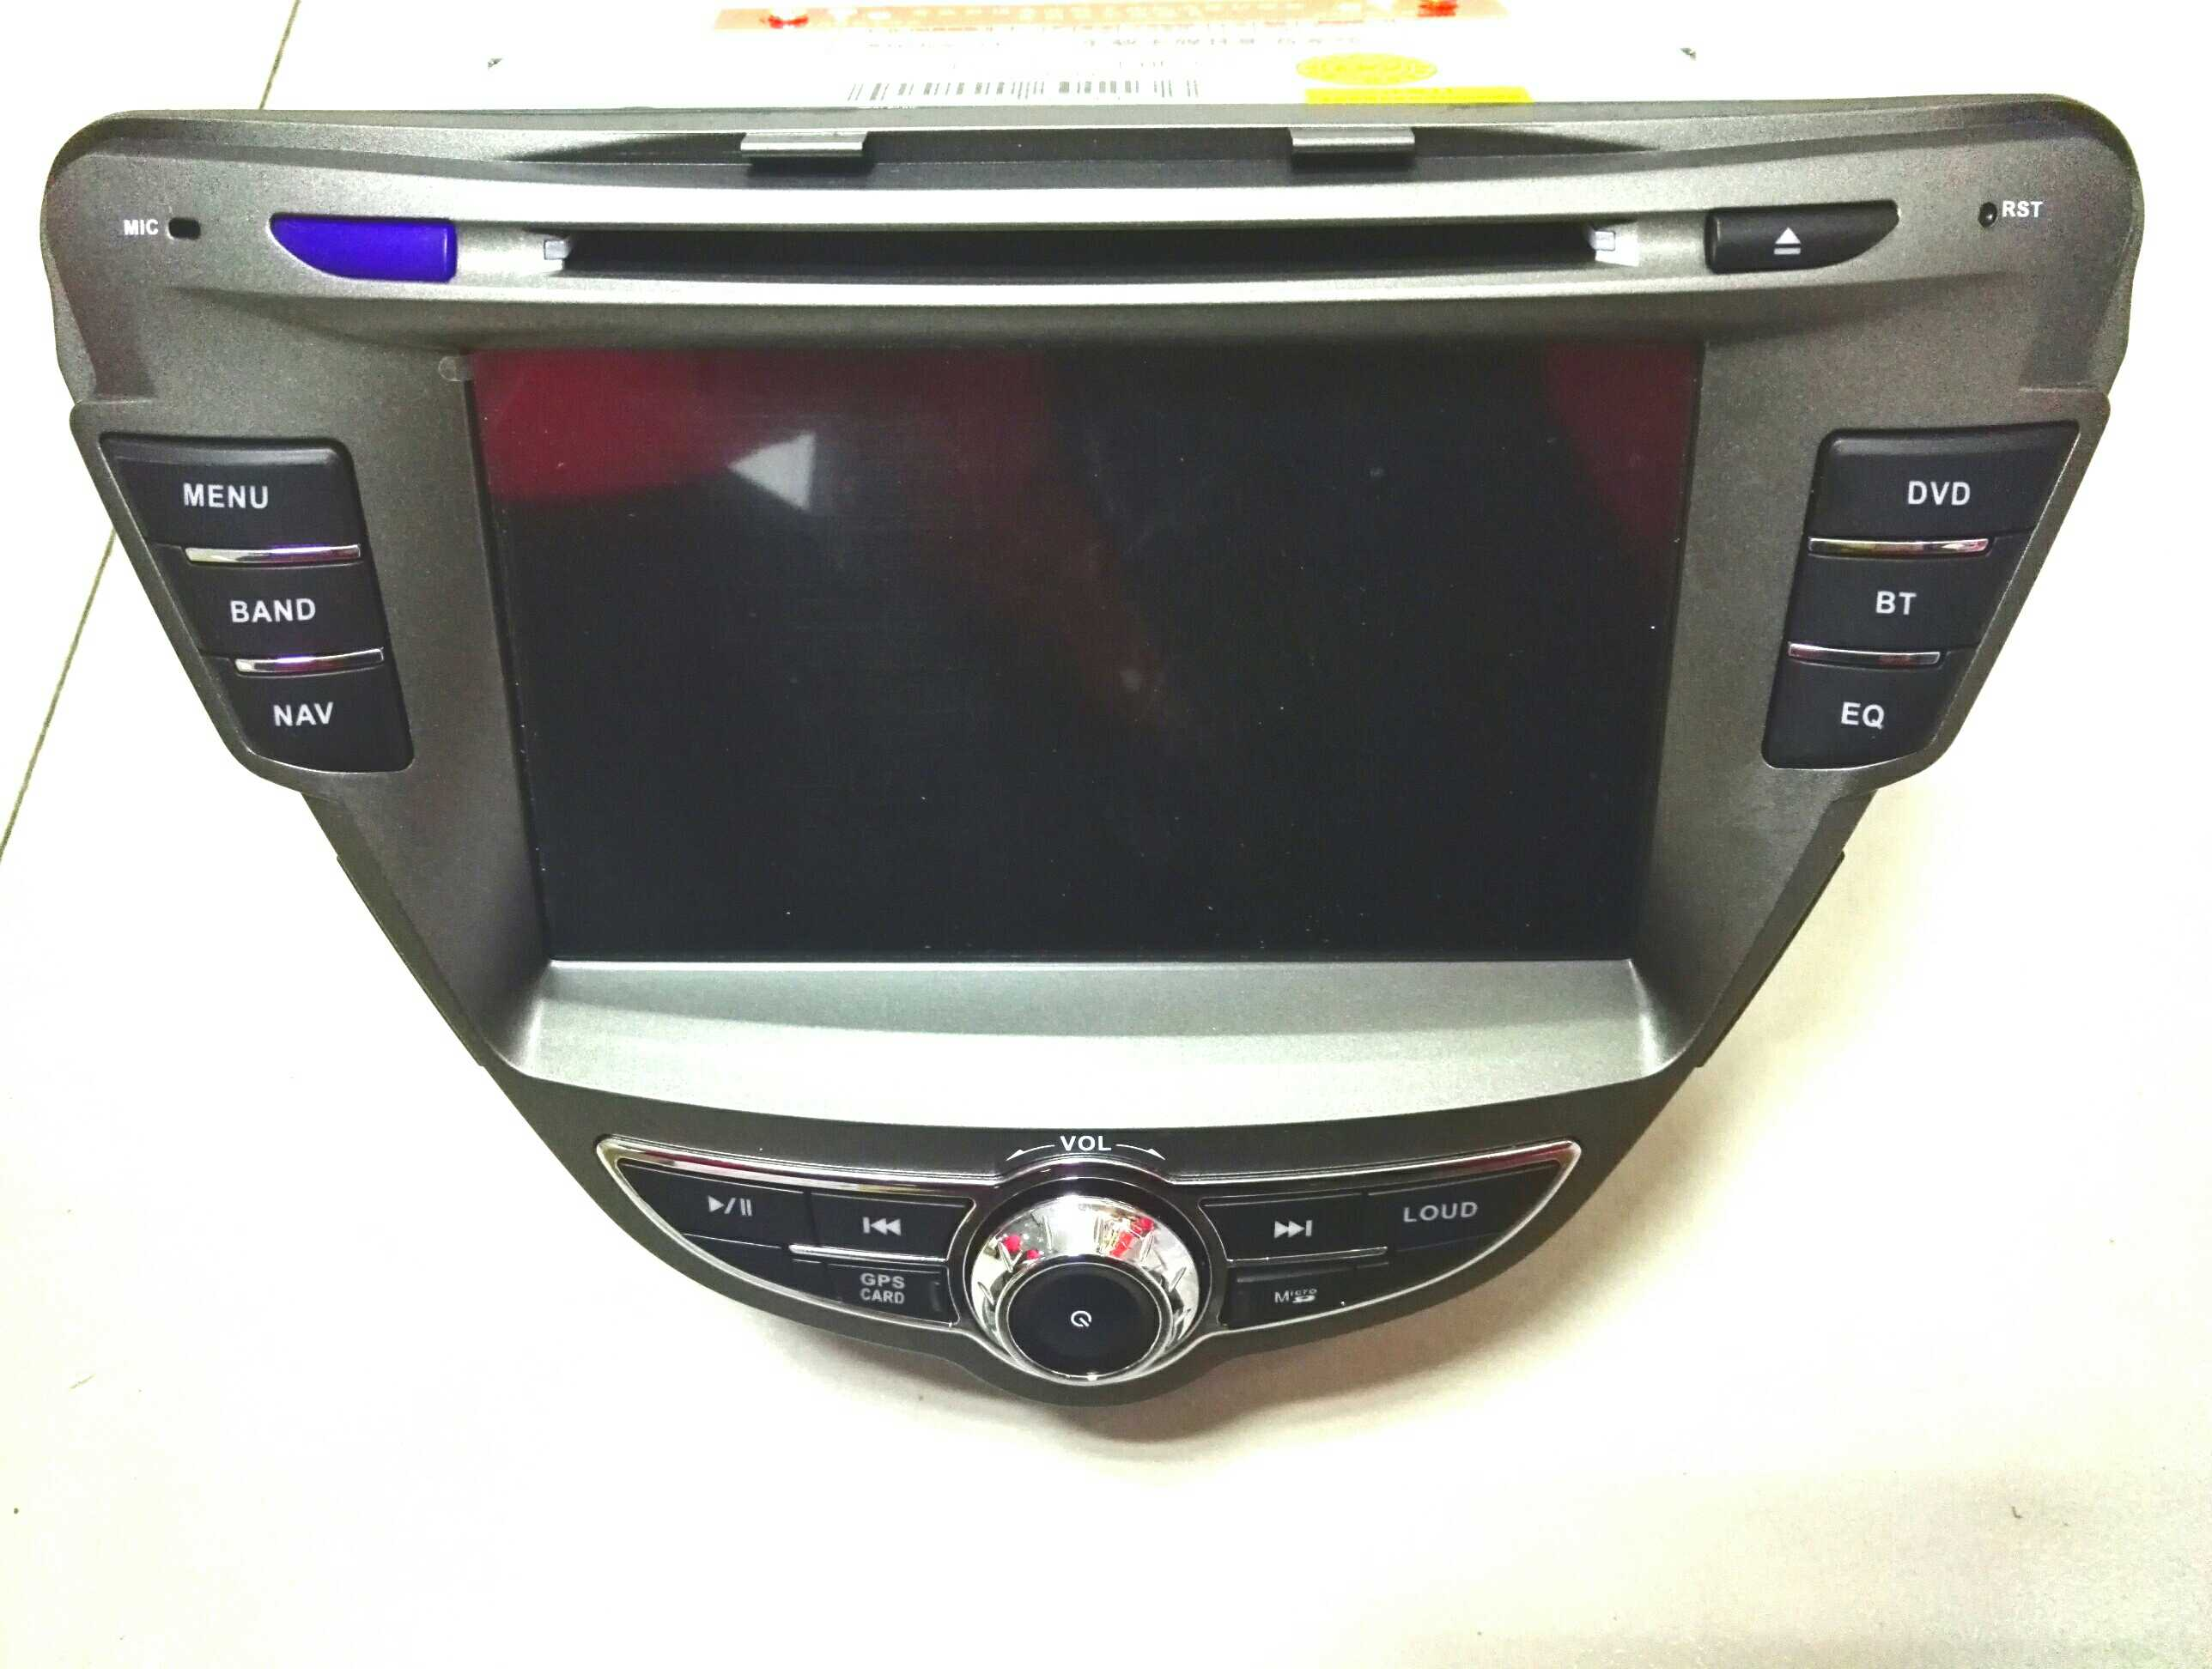 12 Special DVD Navigation Integrated Machine for Modern Lanzhou Motor Vehicle Supports Reversing Image of Traffic Recorder